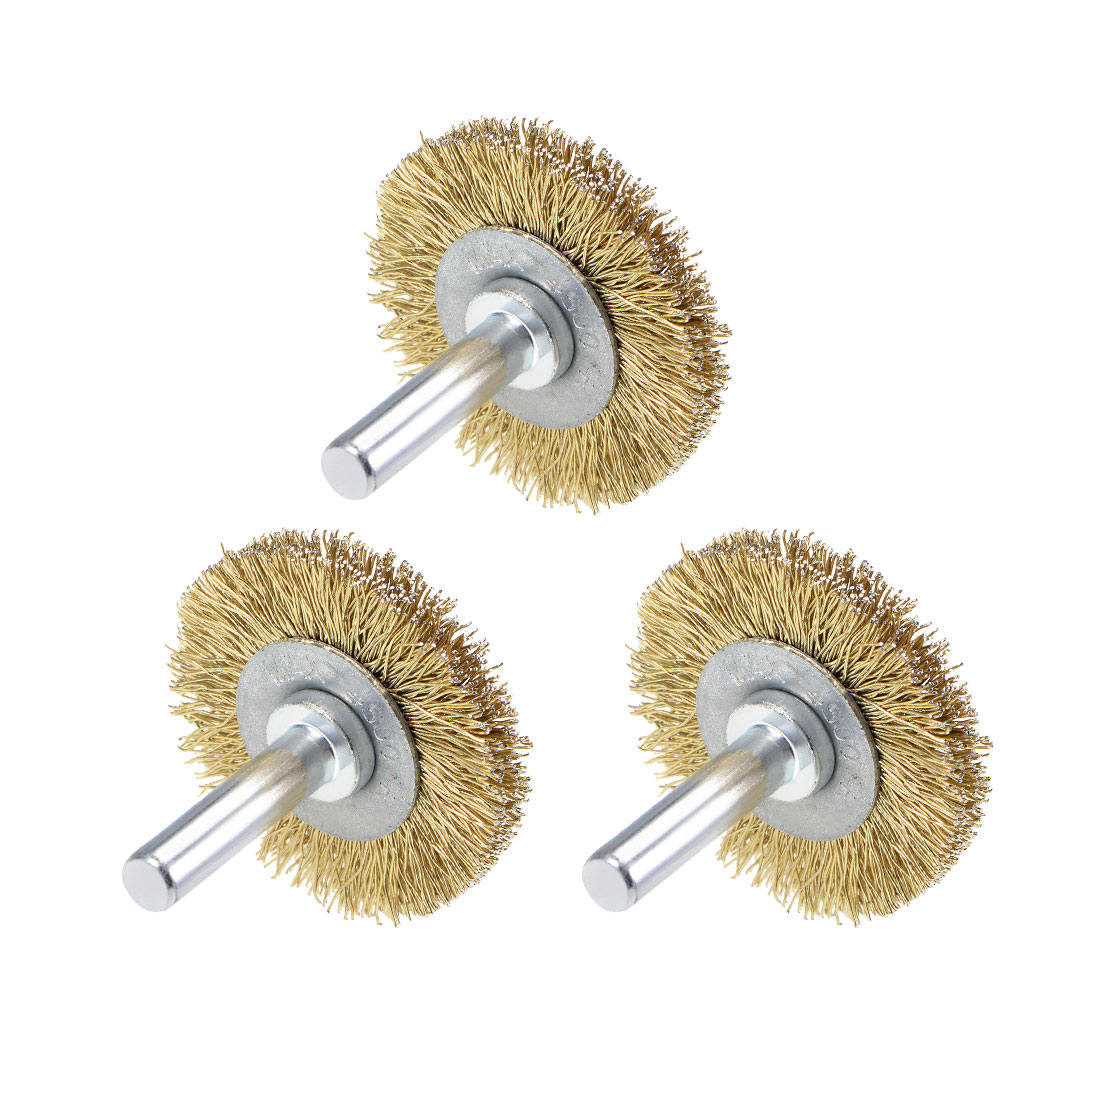 1-1/2-Inch Wire Wheel Brush Bench Brass Plated Crimped Steel 1/4-Inch Shank 3Pcs